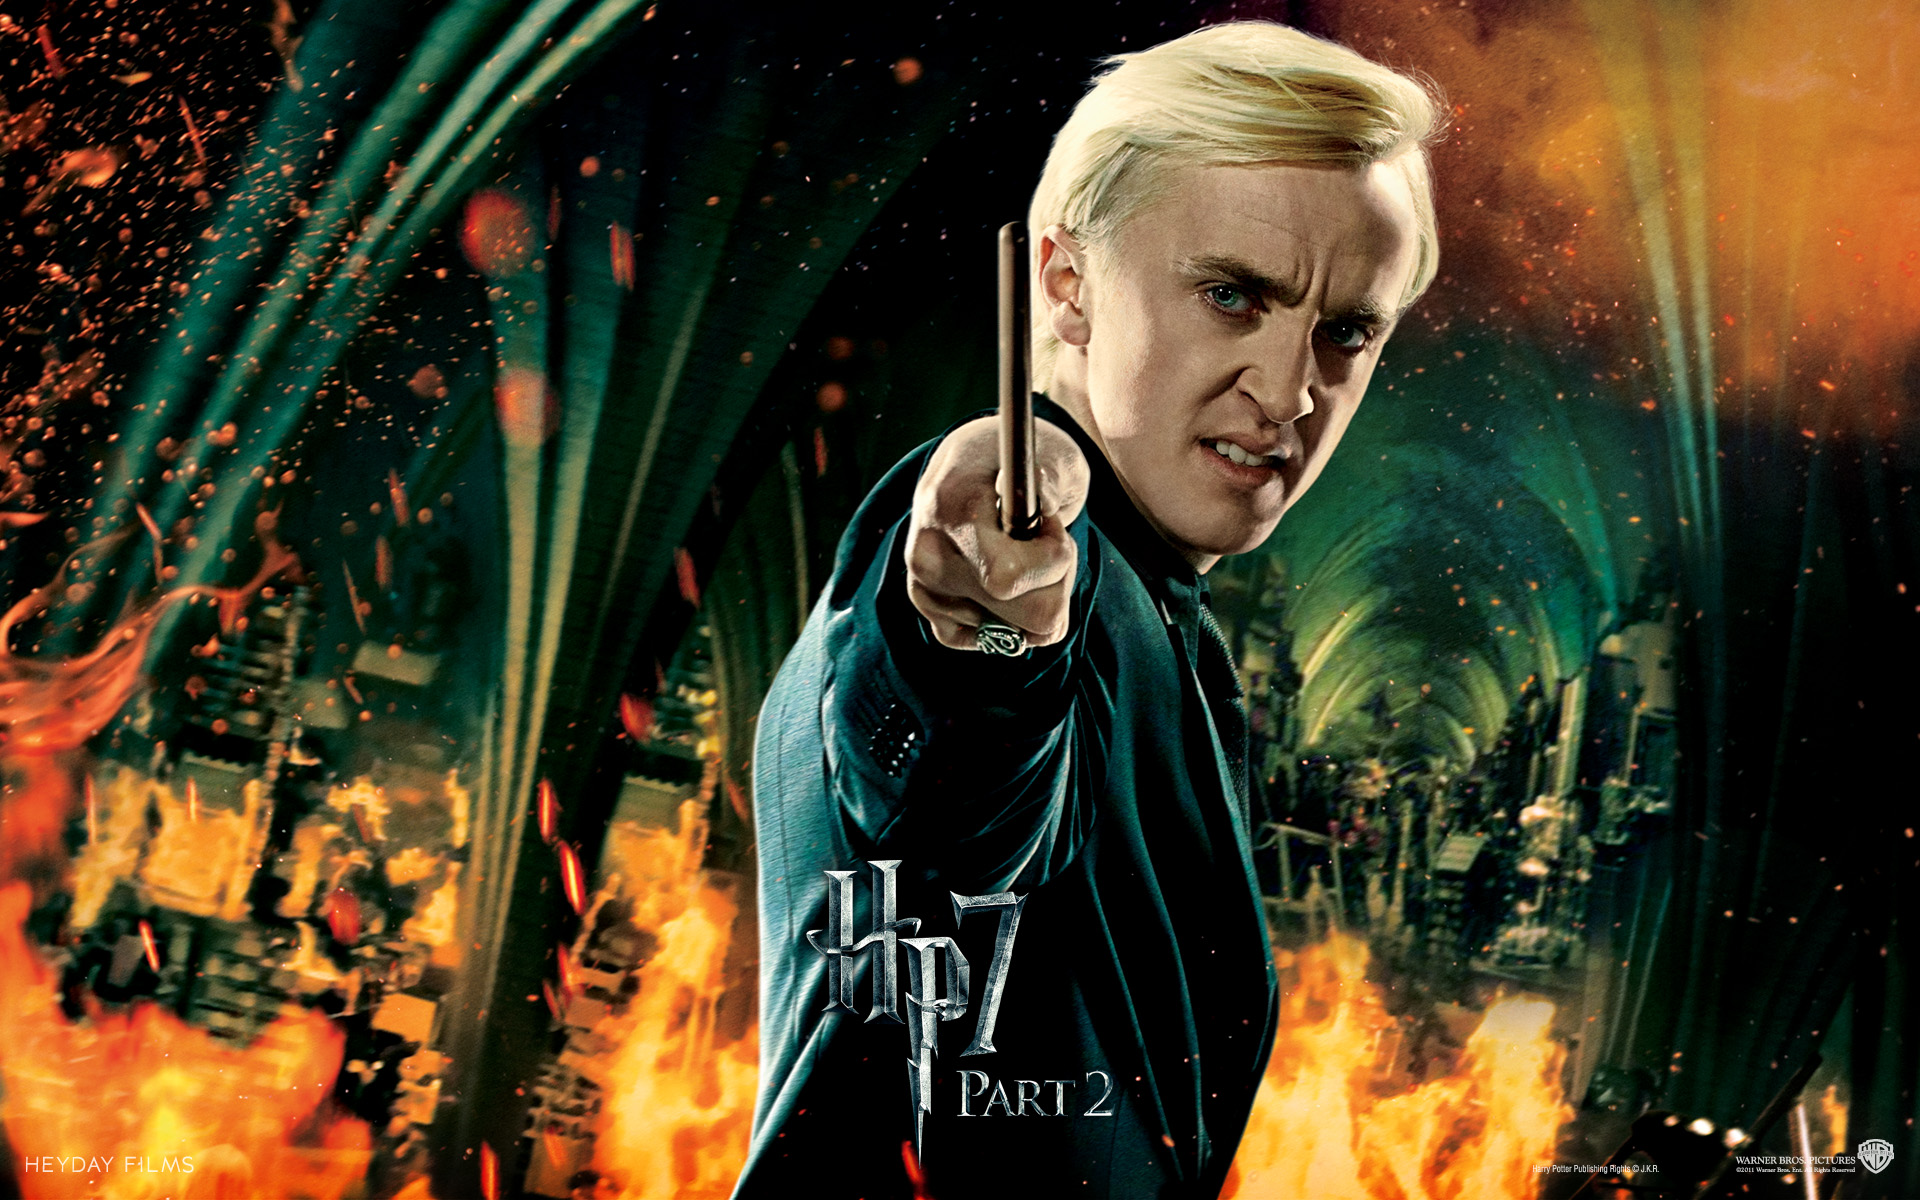 Wallpaper HP7 Draco Malfoy - Tom Felton Harry Potter